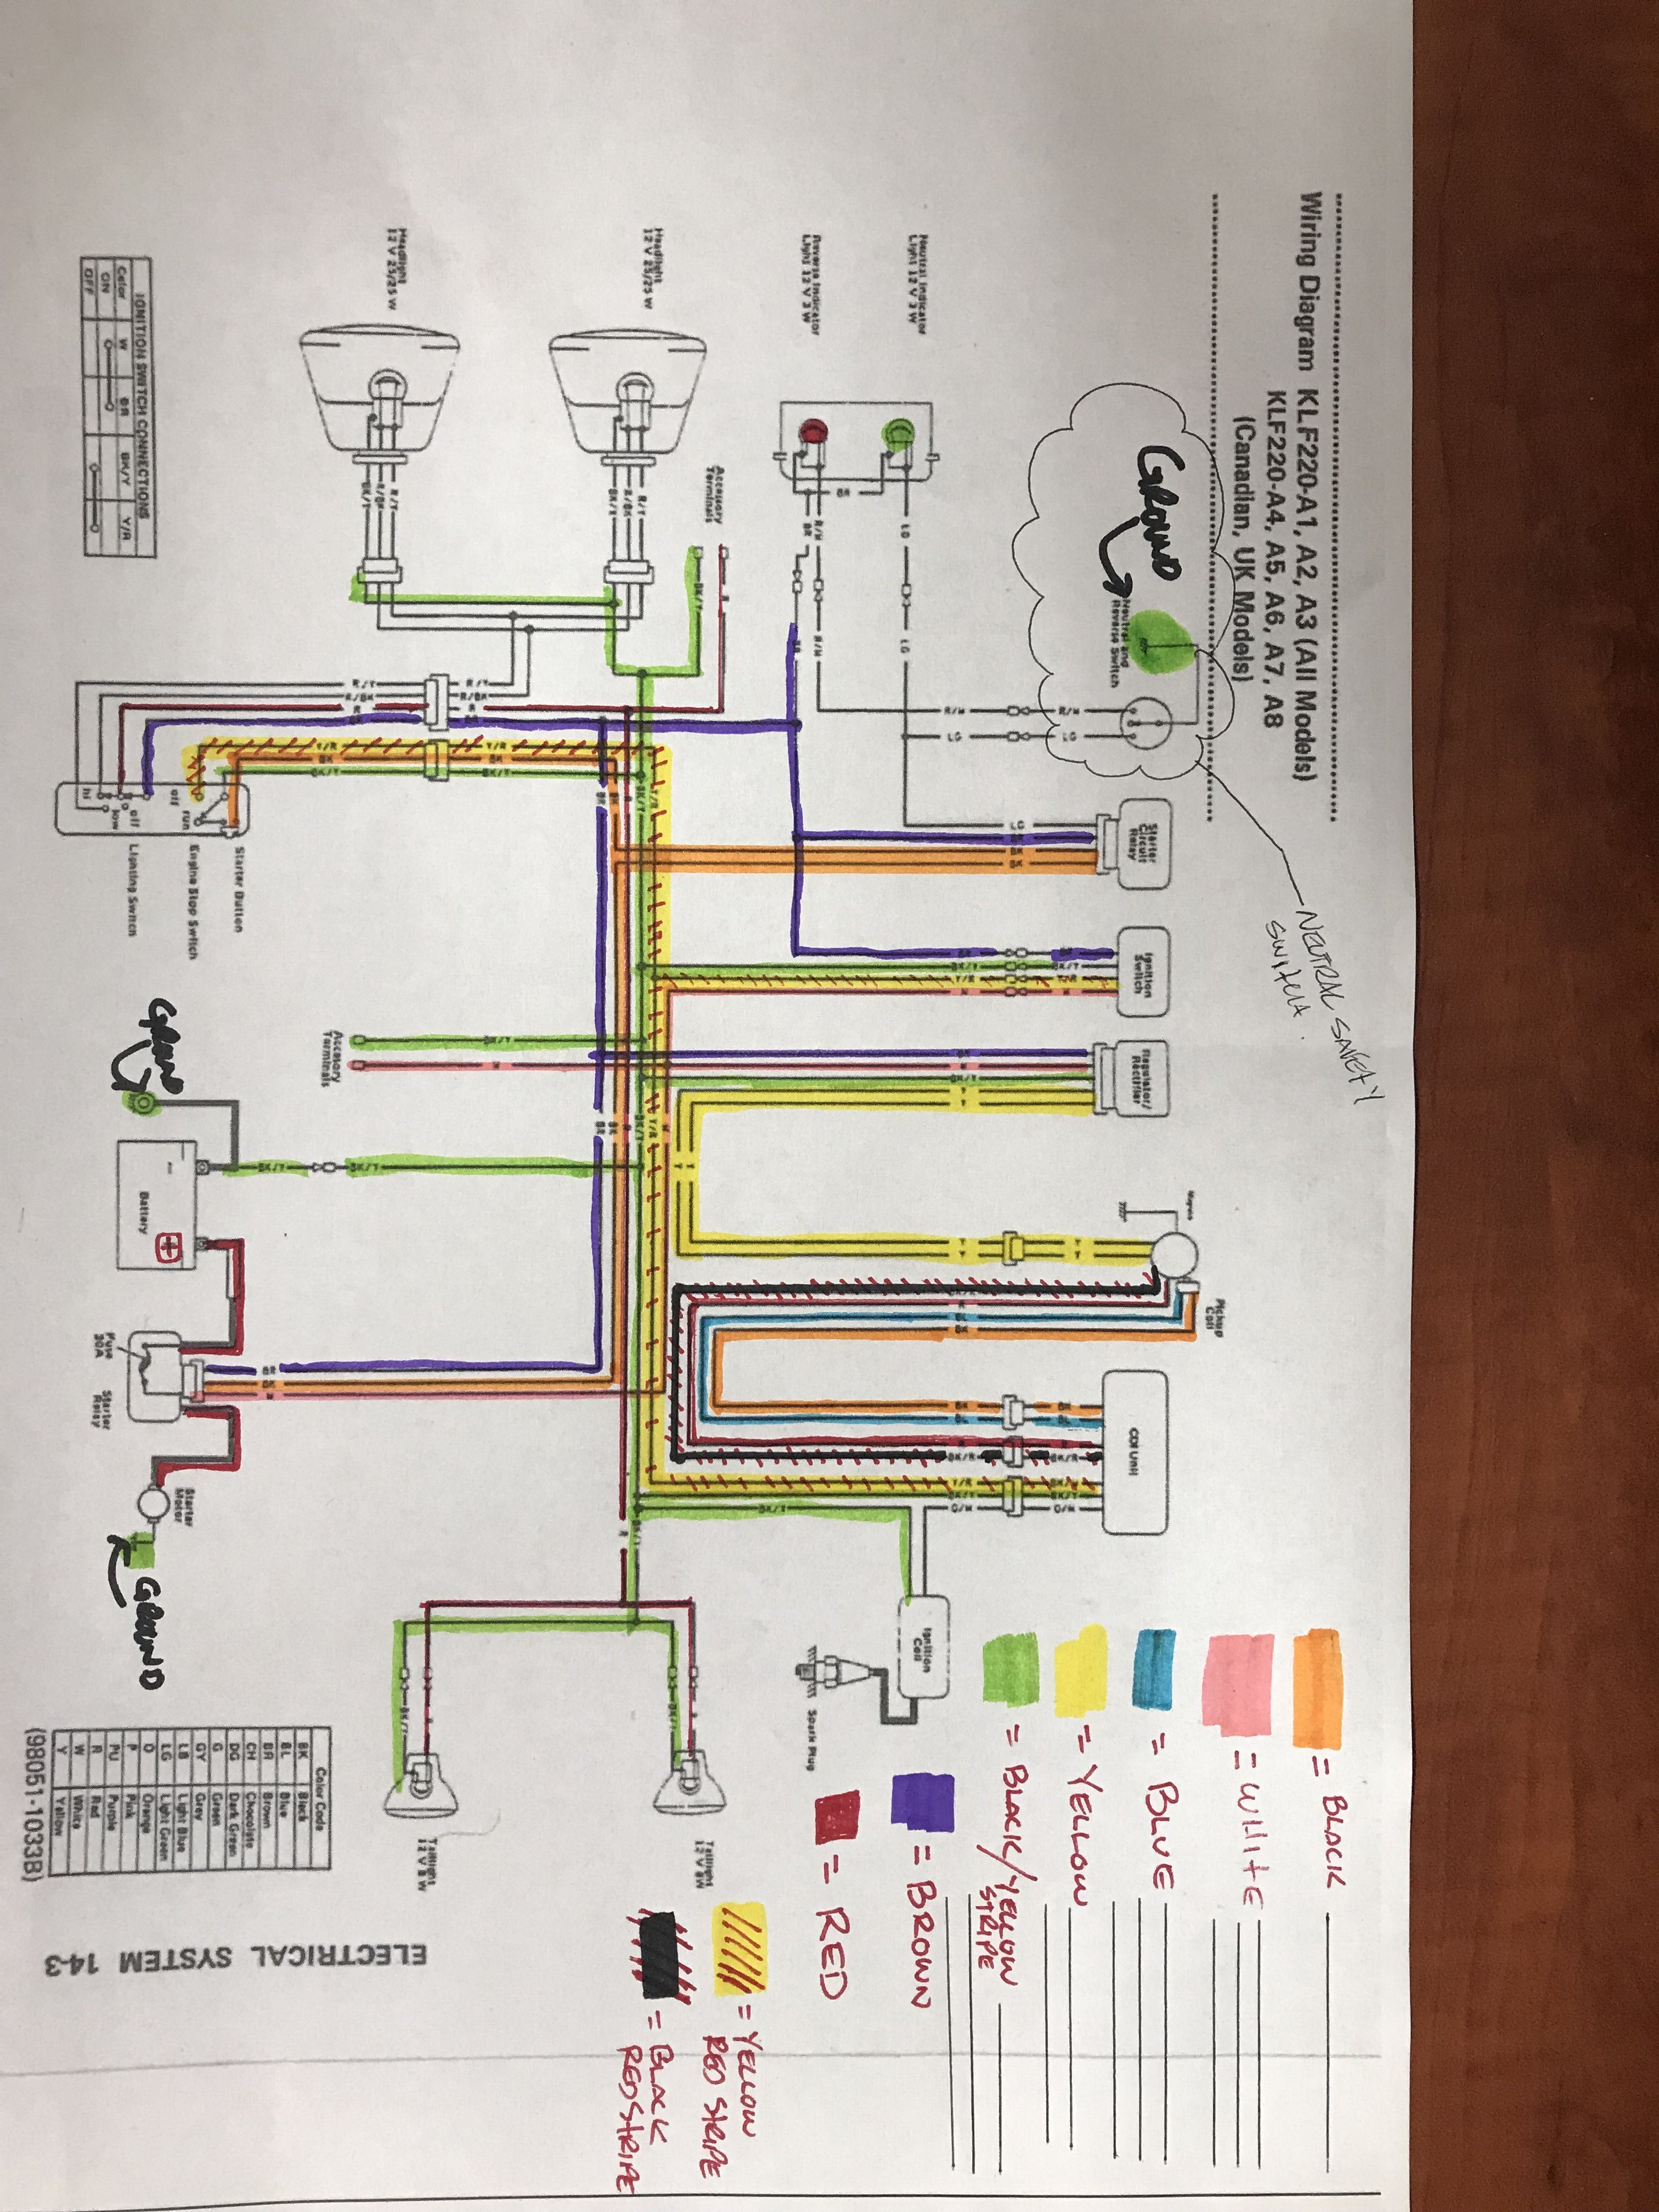 Kawasaki Bayou 250 Wiring Harness - Home Wiring Diagram seem-expose -  seem-expose.rossileautosrl.it | Bayou 250 Wiring Diagram |  | seem-expose.rossileautosrl.it